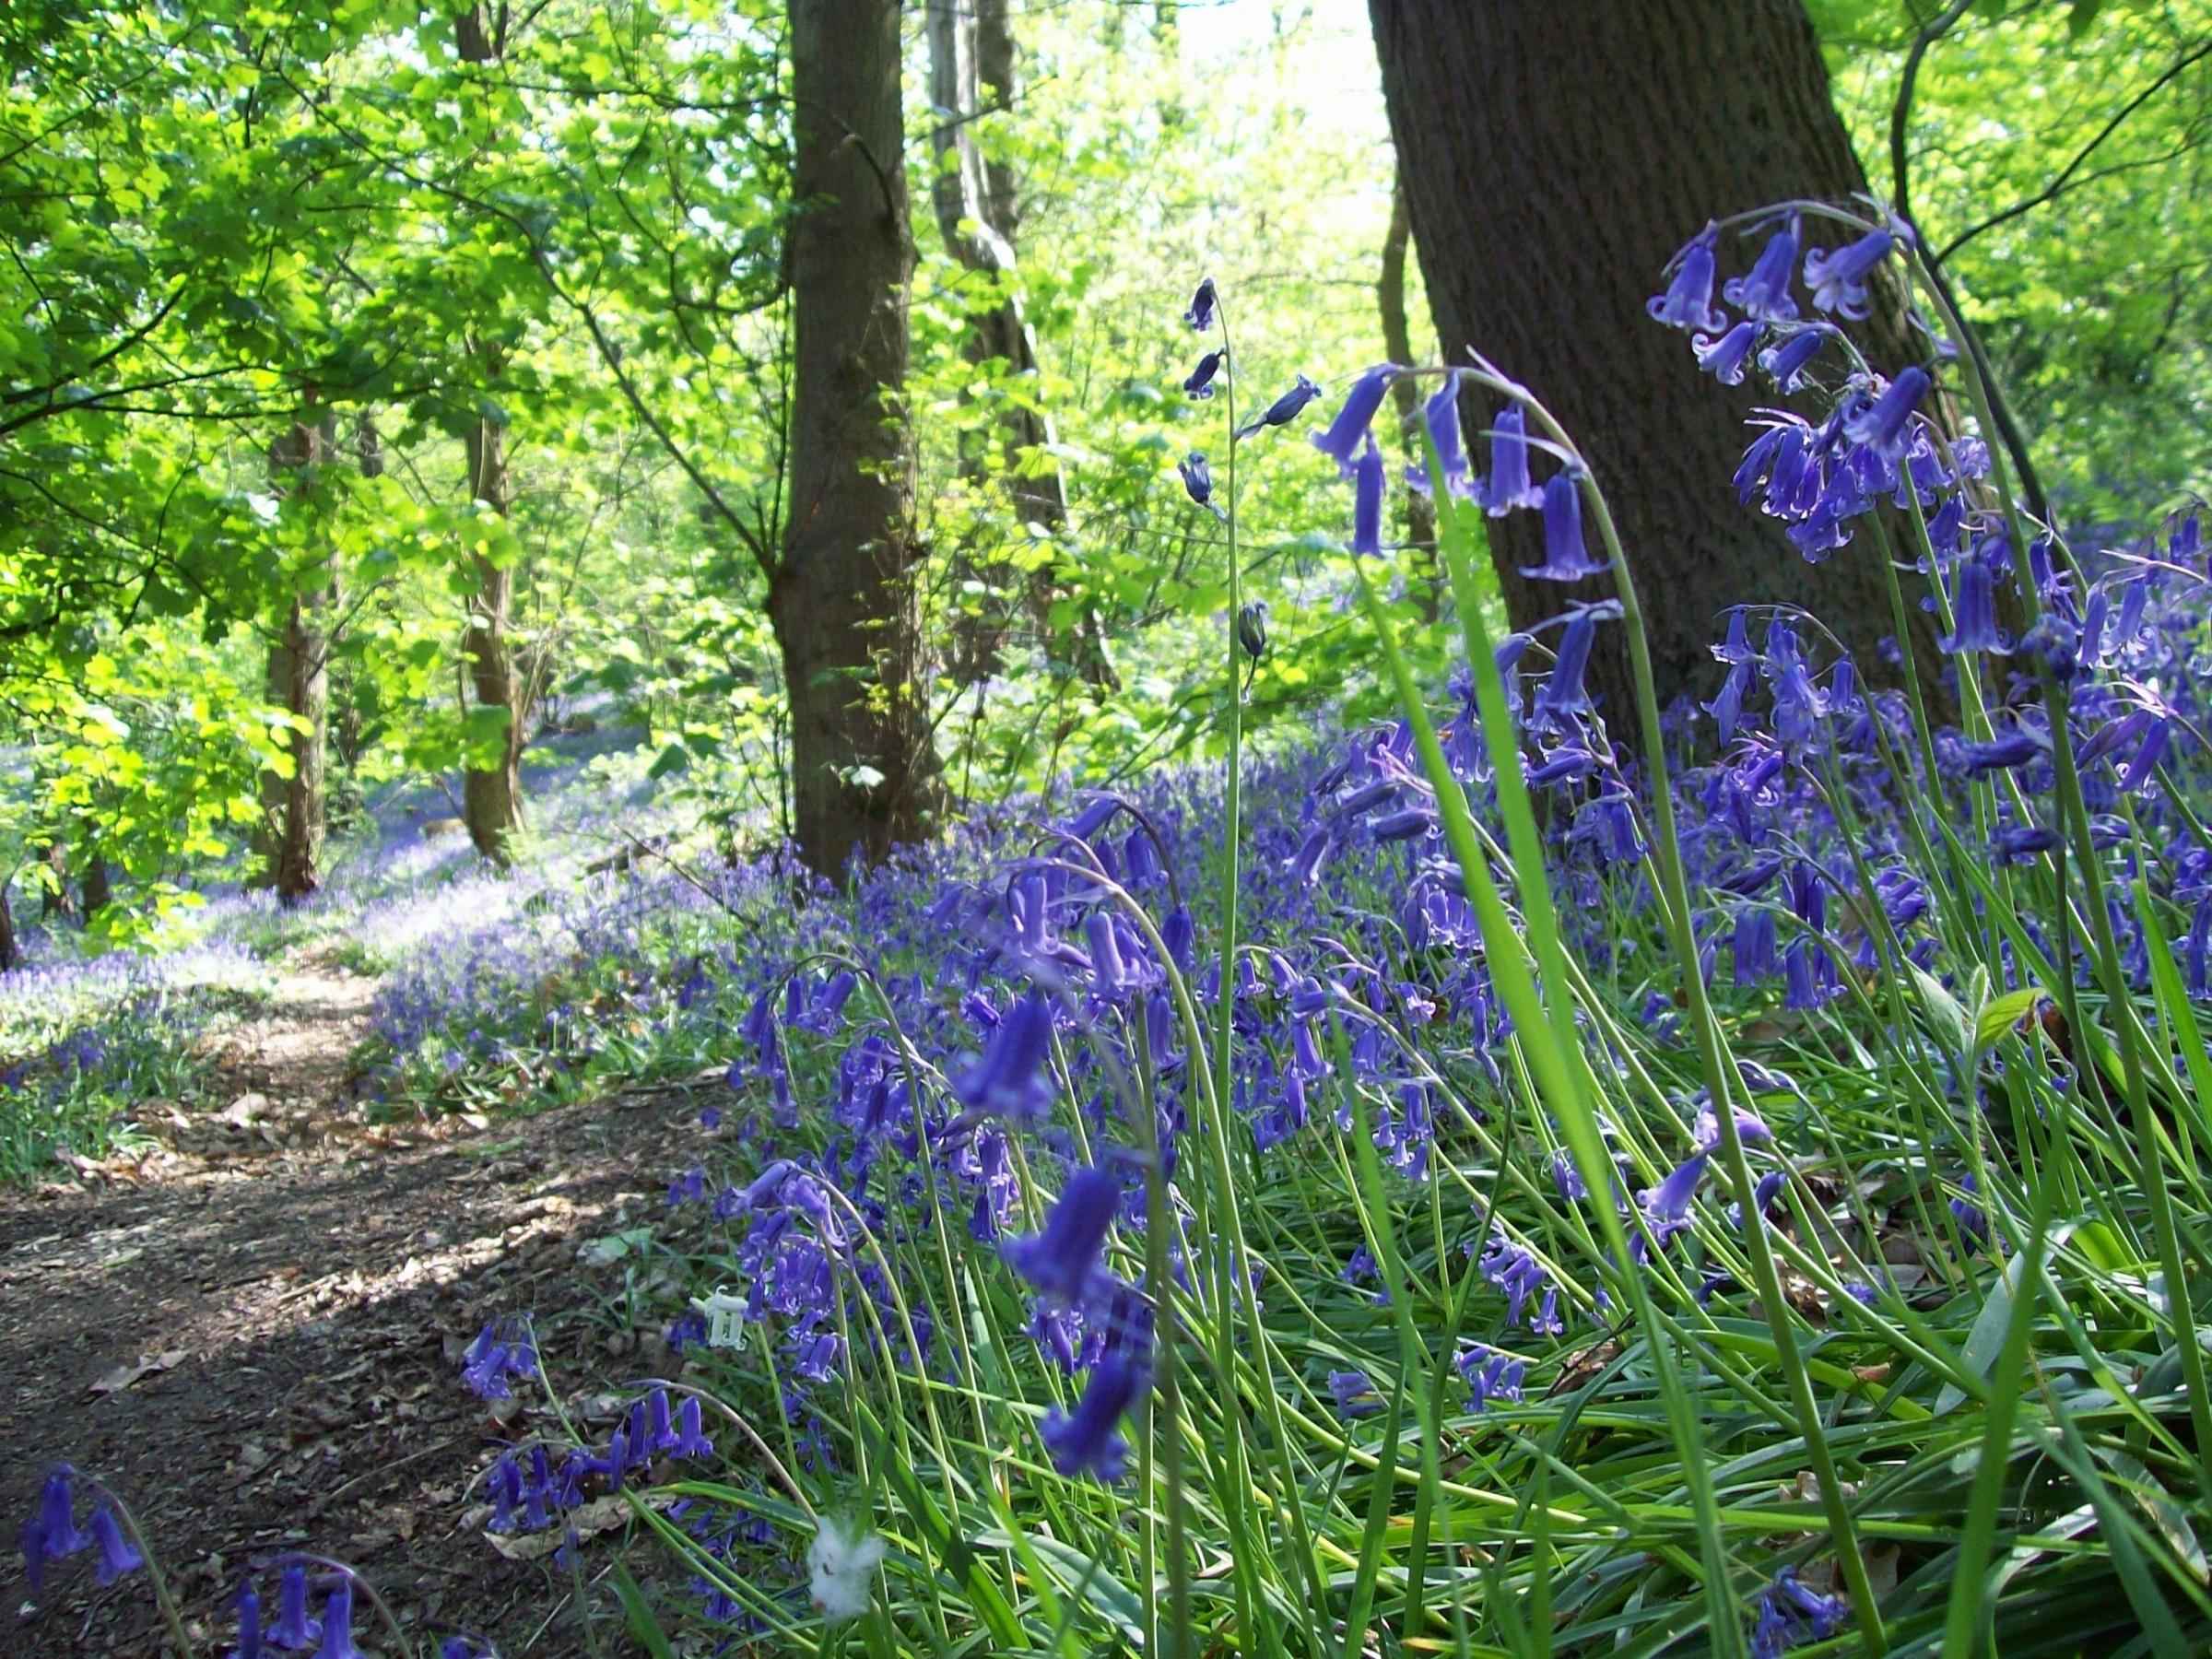 Head over to Hainault Forest Country Park this weekend for you last chance to catch a glimpse of this year's bluebells. Photo: Michelle Blackburn.